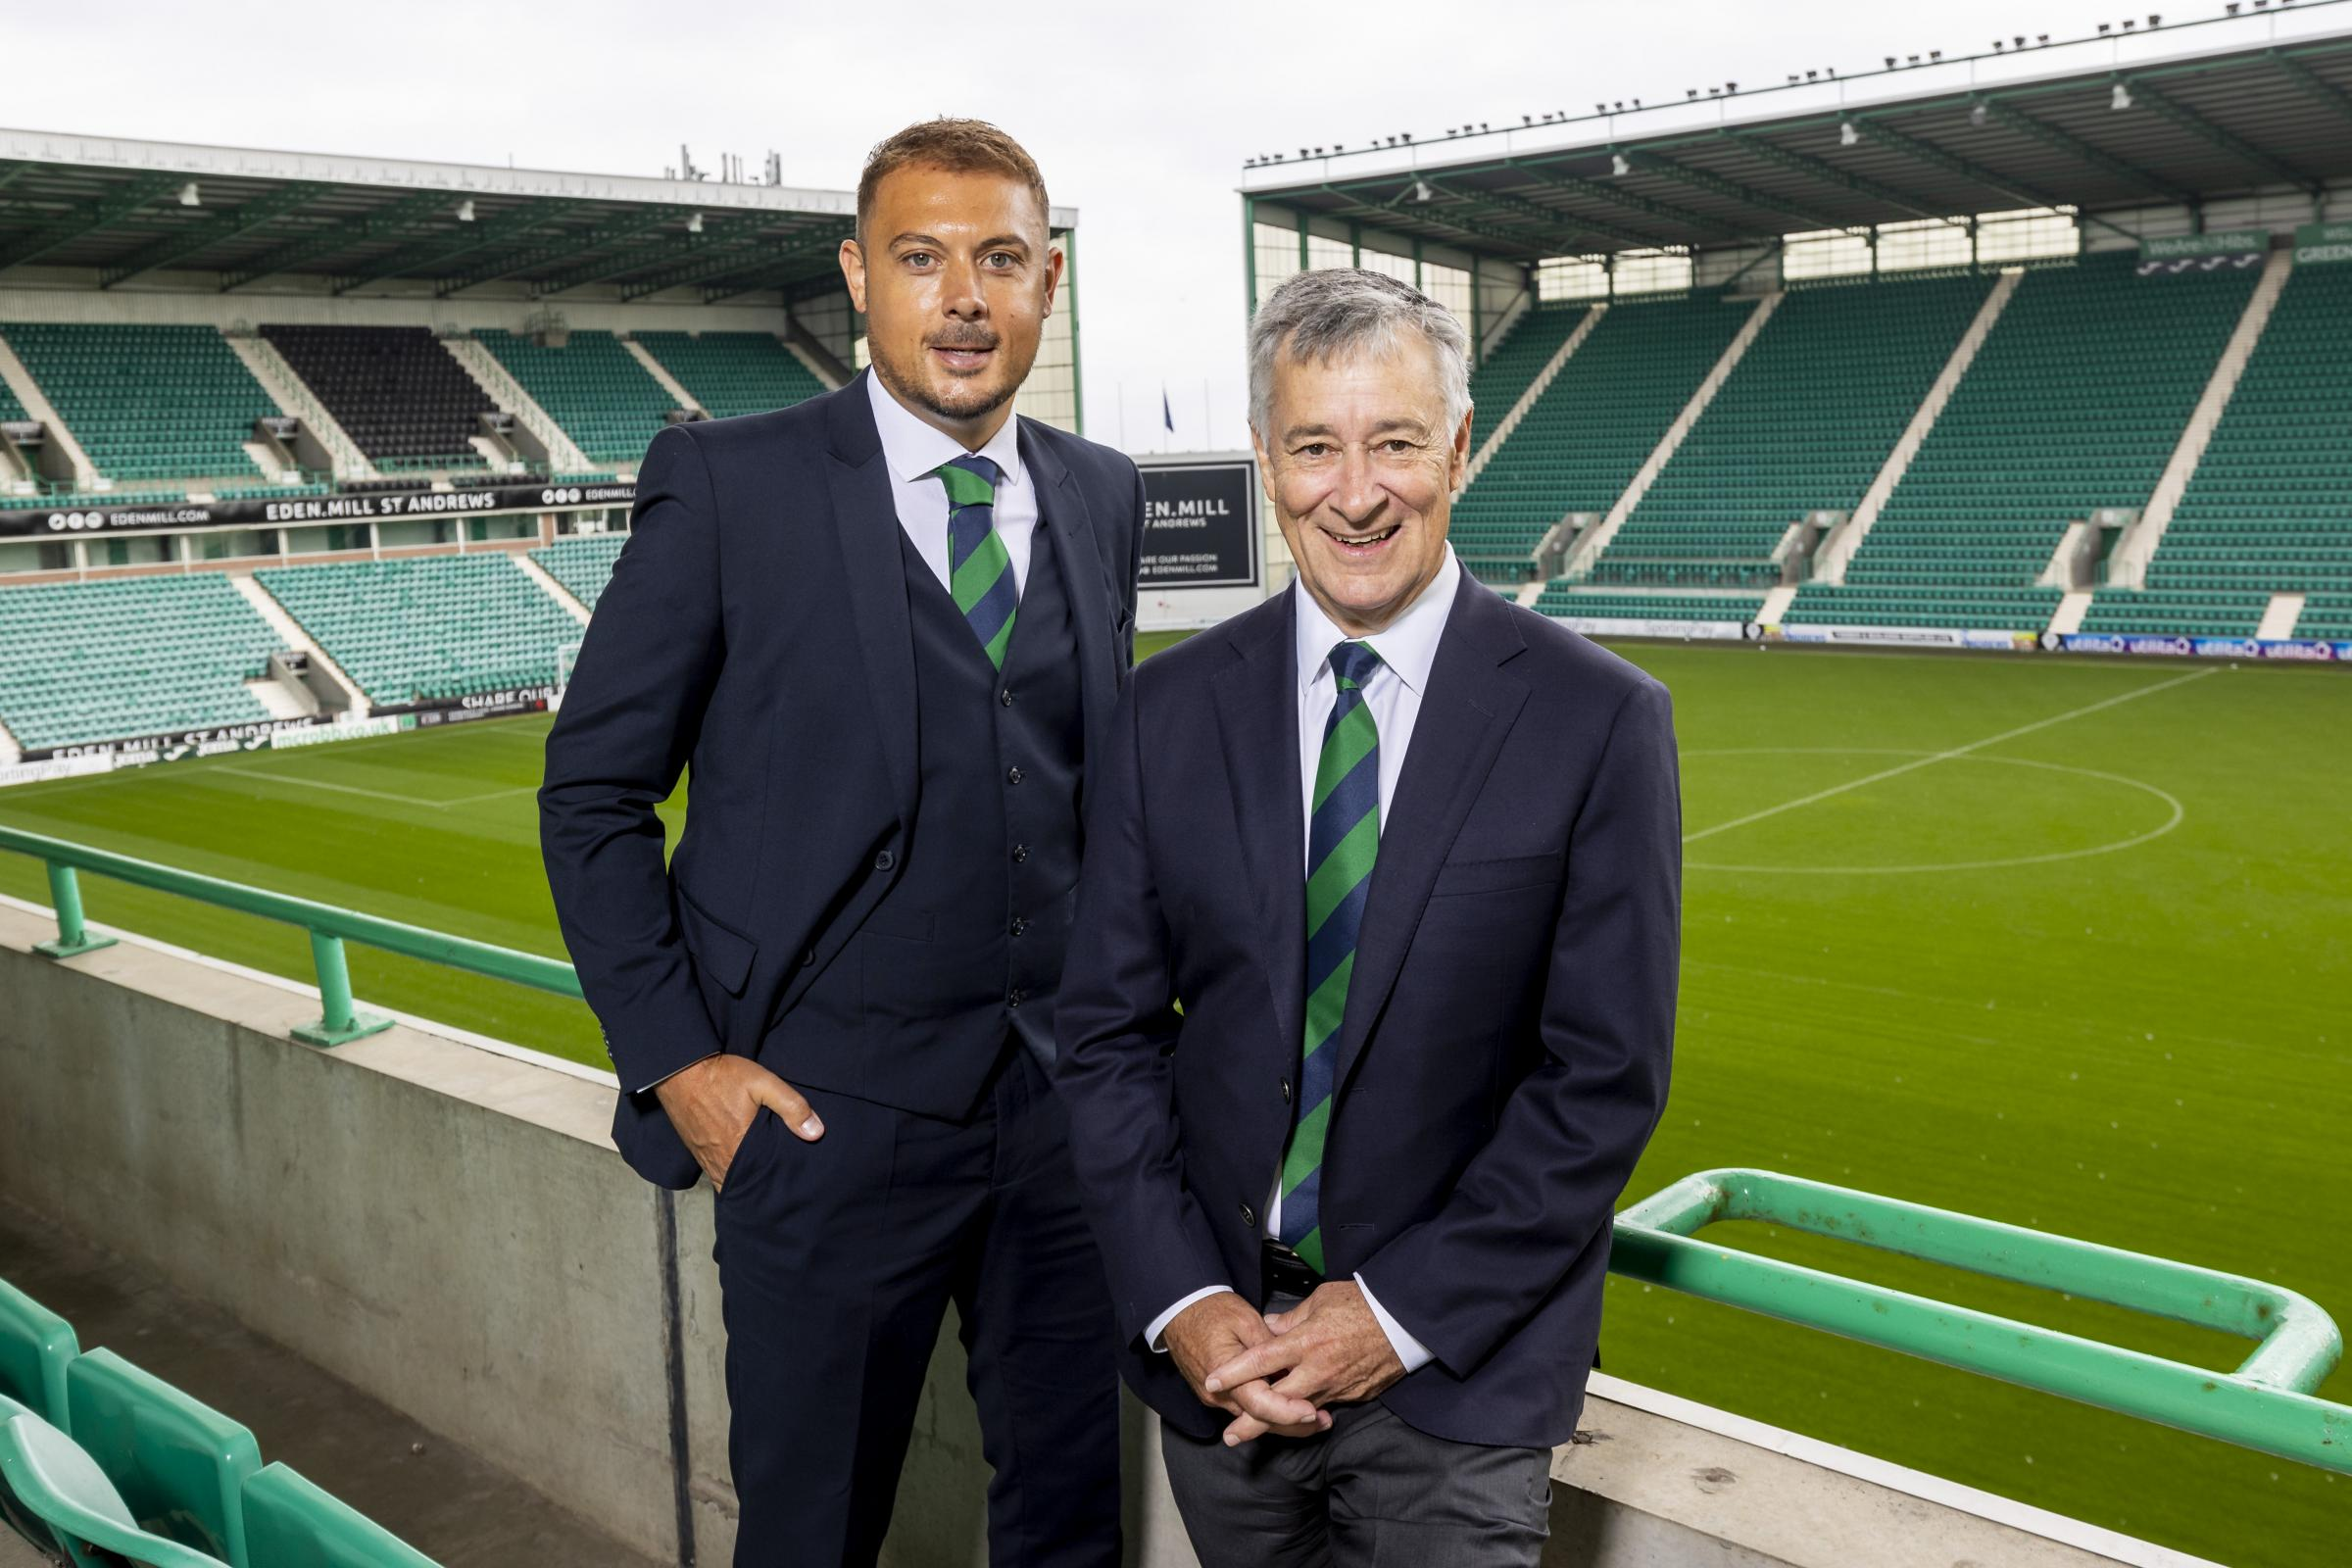 Chief executive Ben Kensell on leaving Norwich Premier League challenge minute he knew Hibs were interested